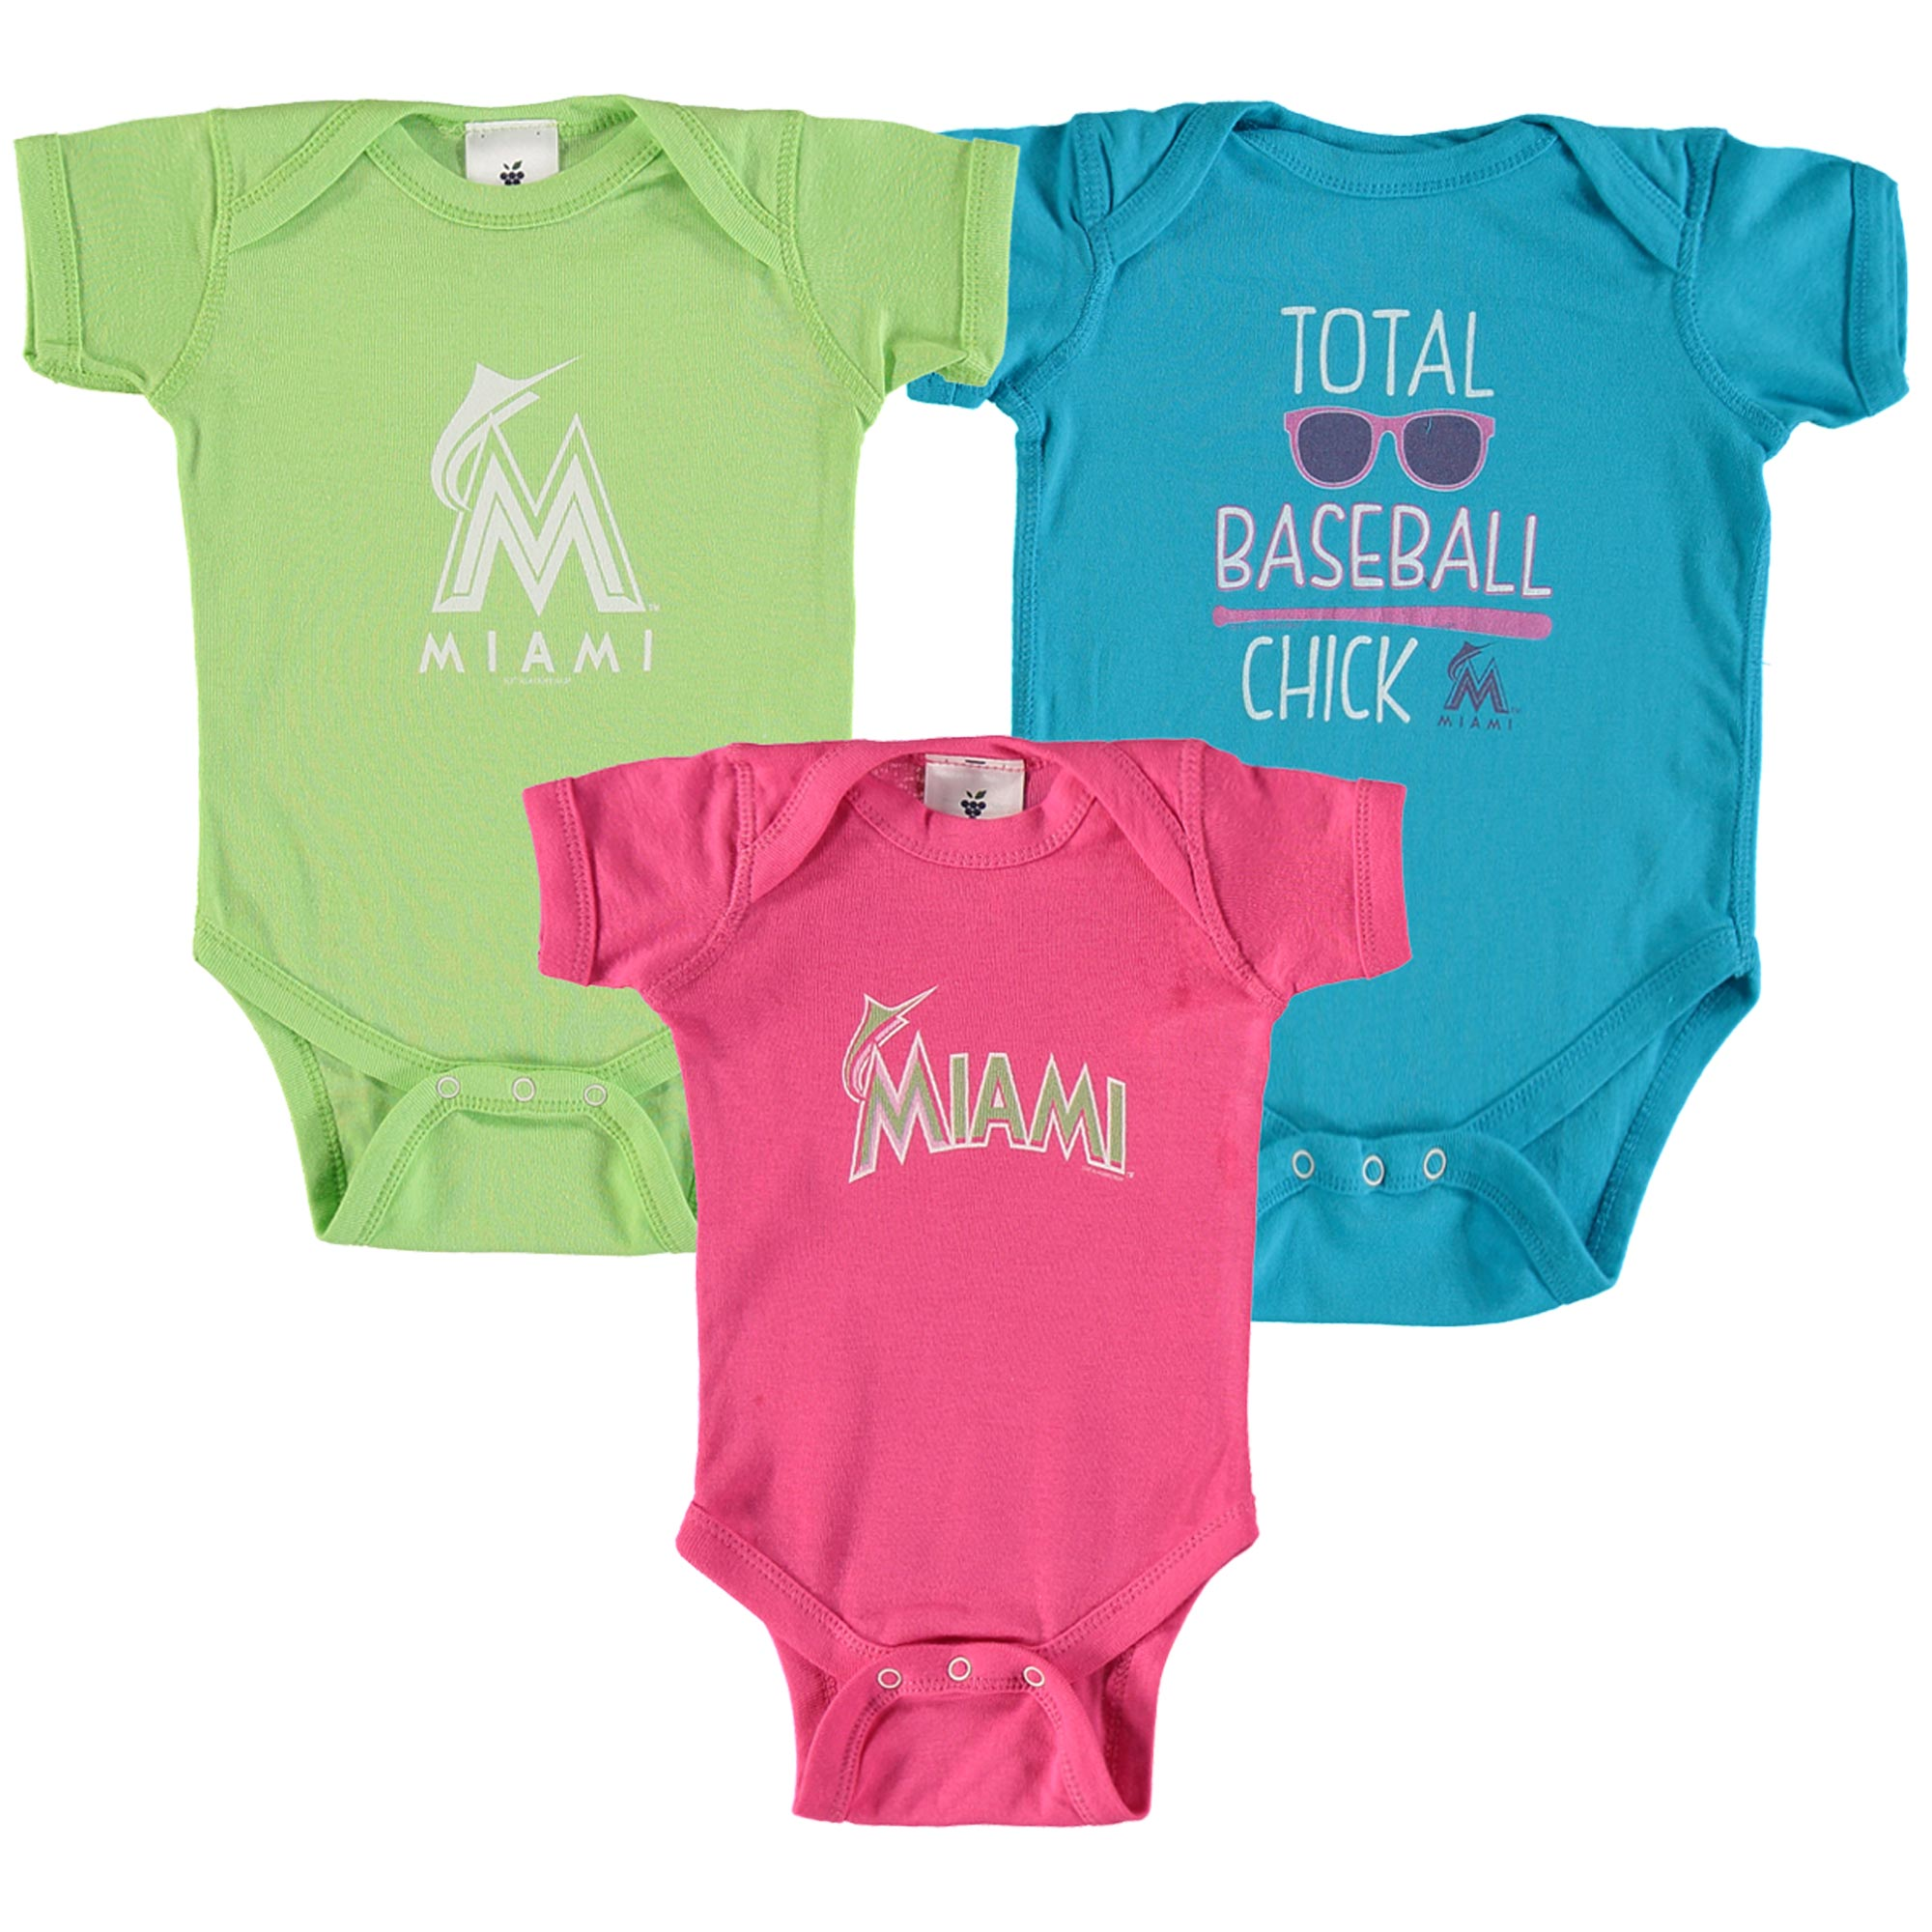 Miami Marlins Soft As A Grape Girl's Newborn & Infant Grow With Me Three-Pack - Blue/Green/Pink - 0-12 MO